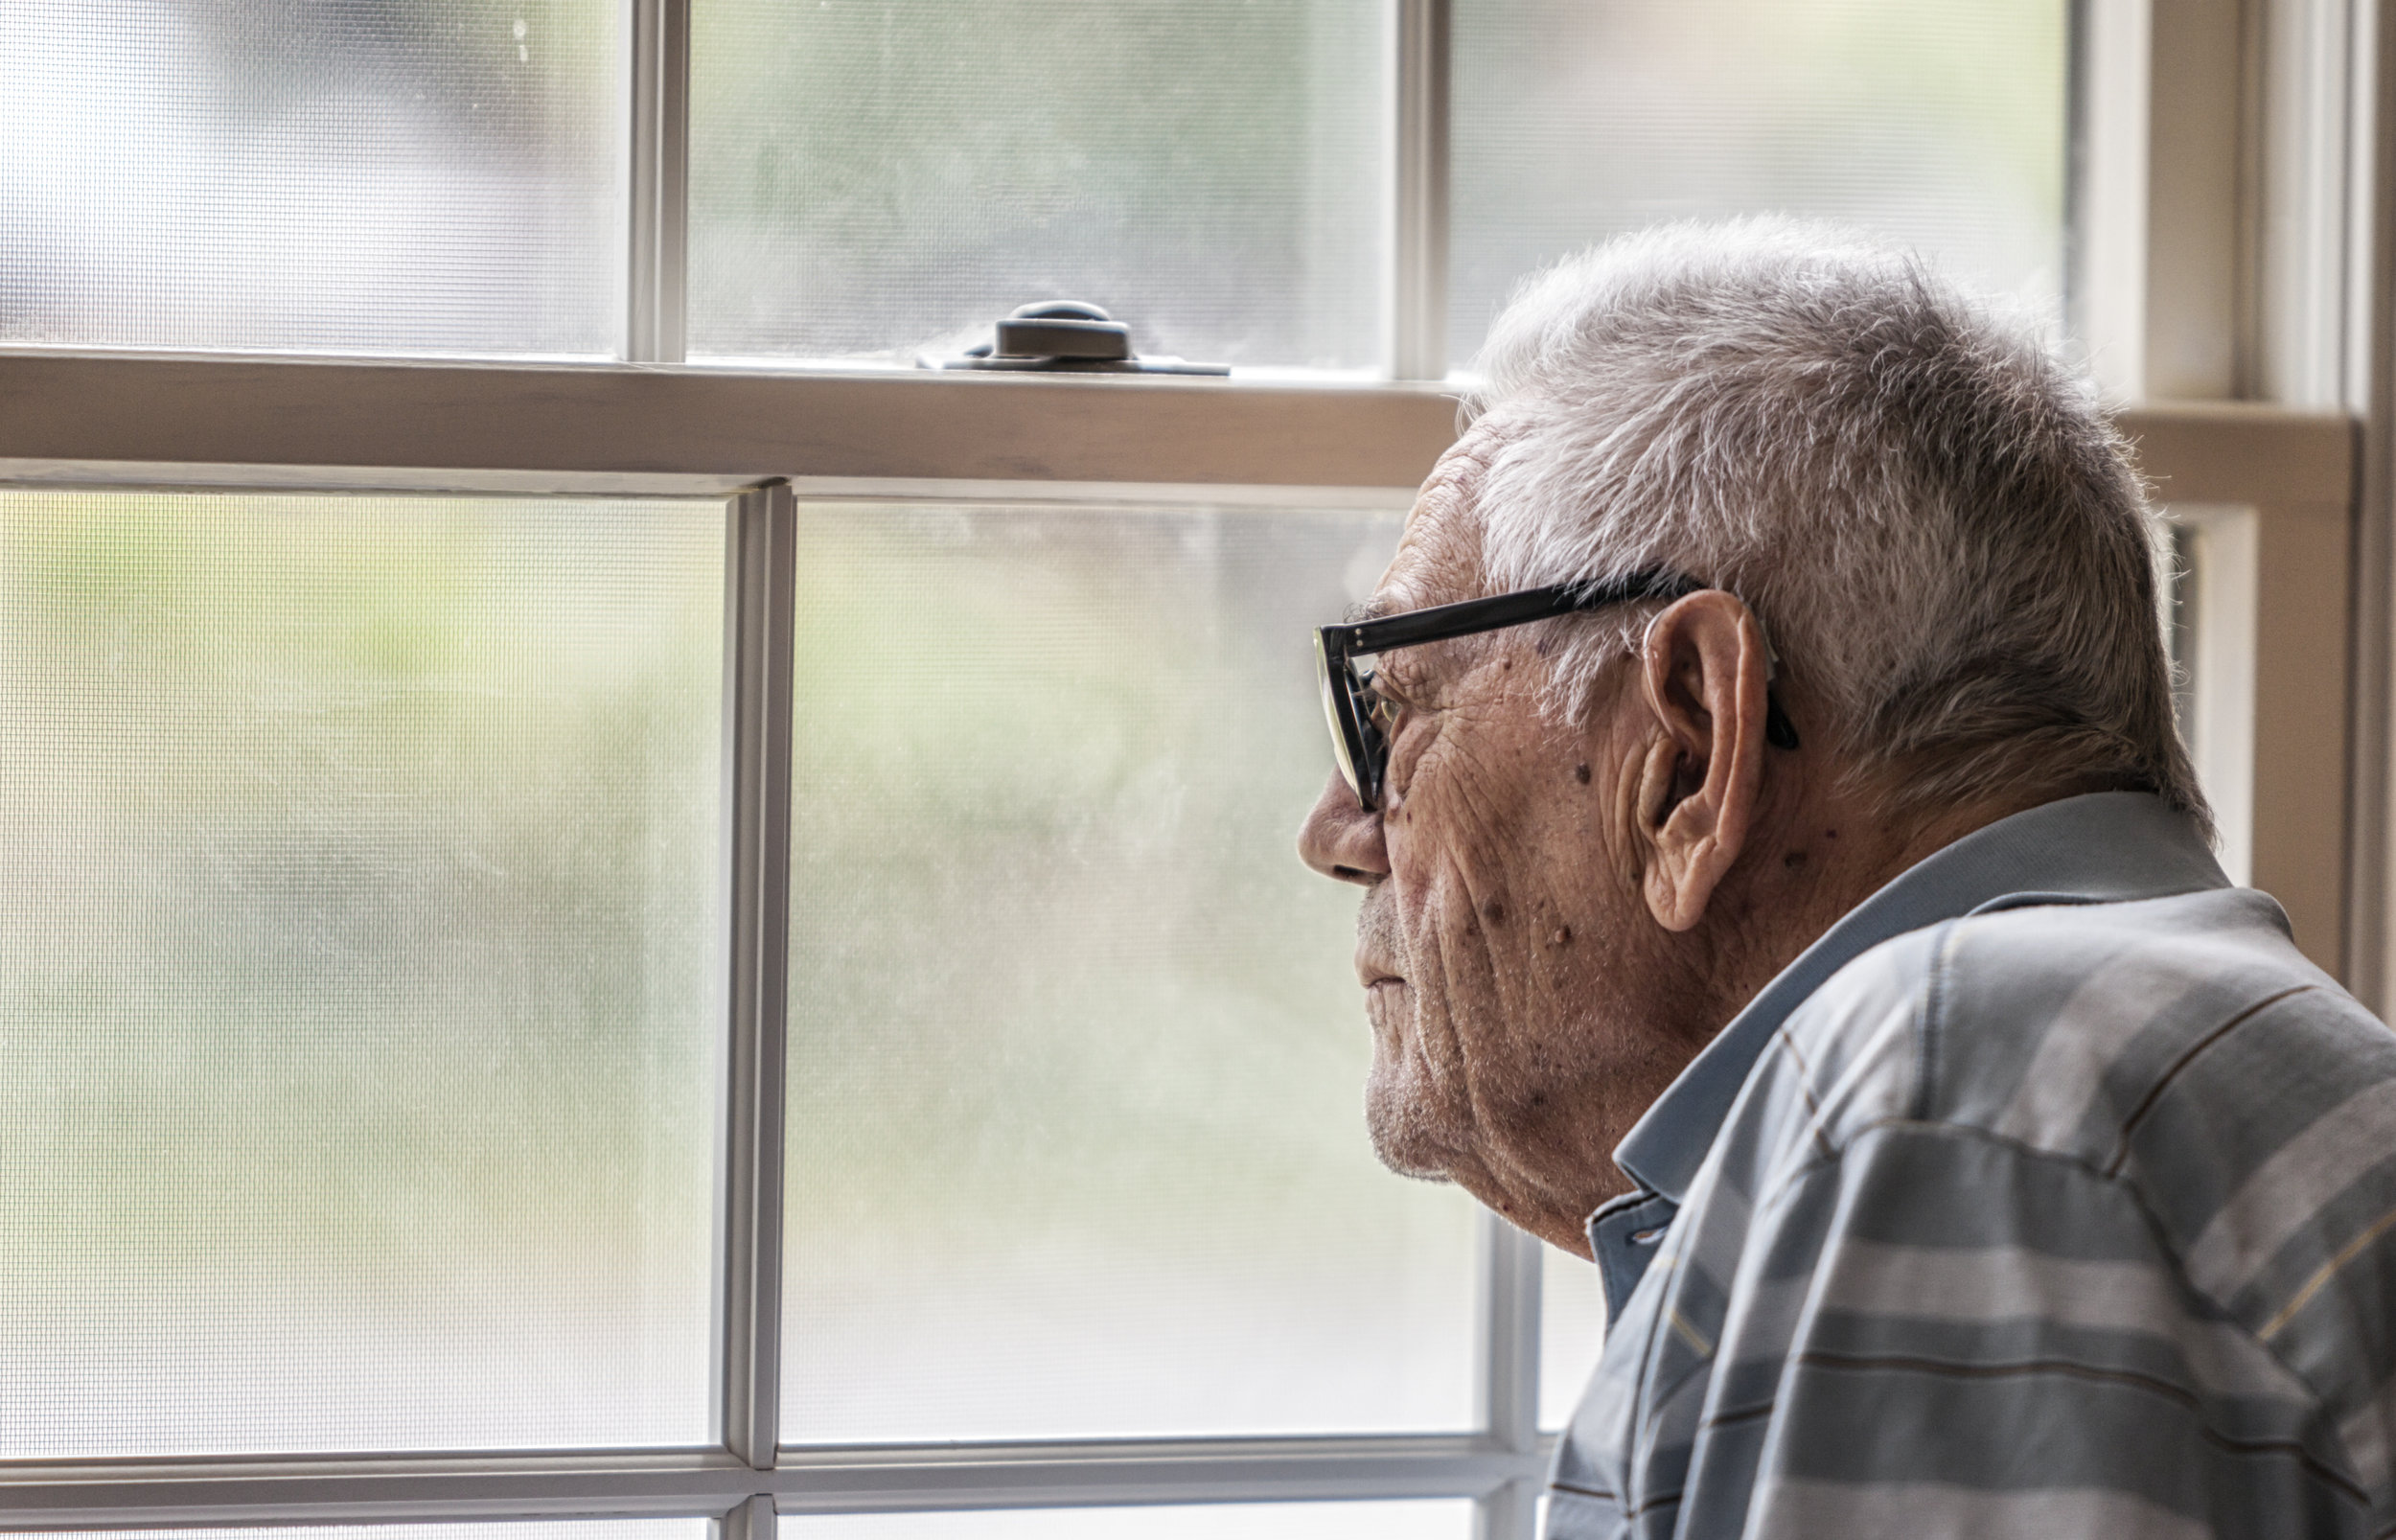 Nearly ONE in TWO people with dementia experiences some form of abuse